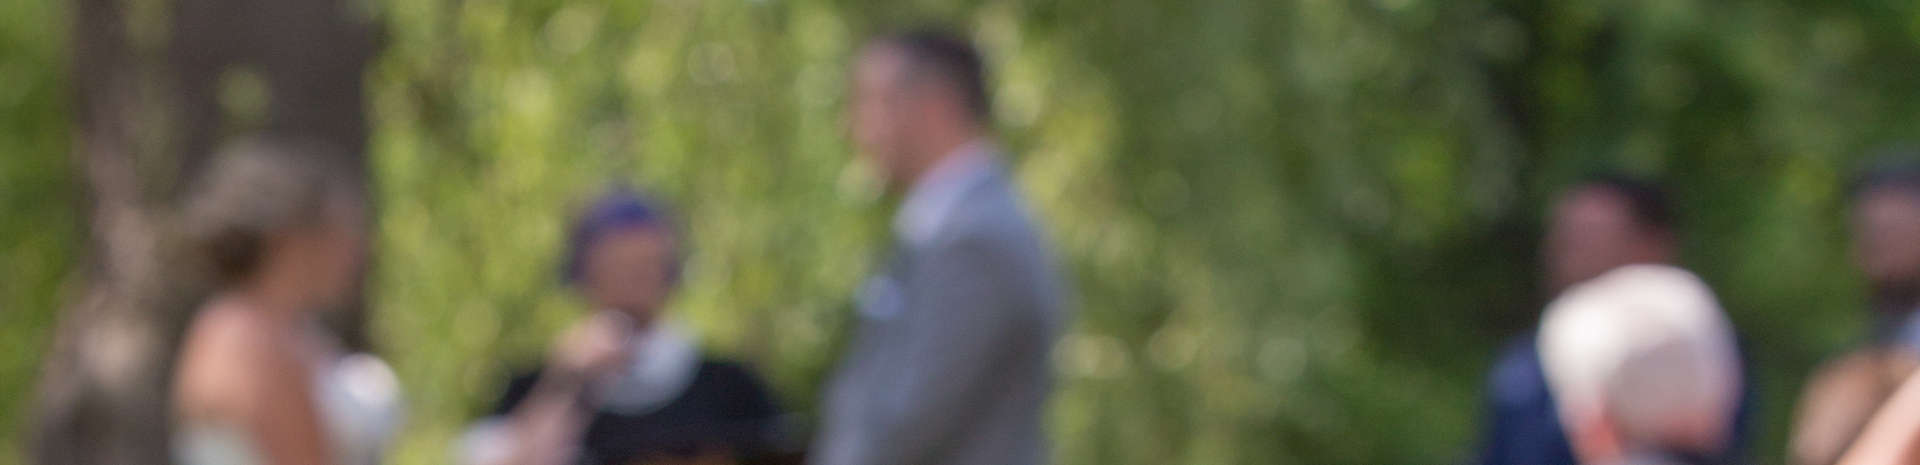 Bride and groom looking at each other in a diffused photo